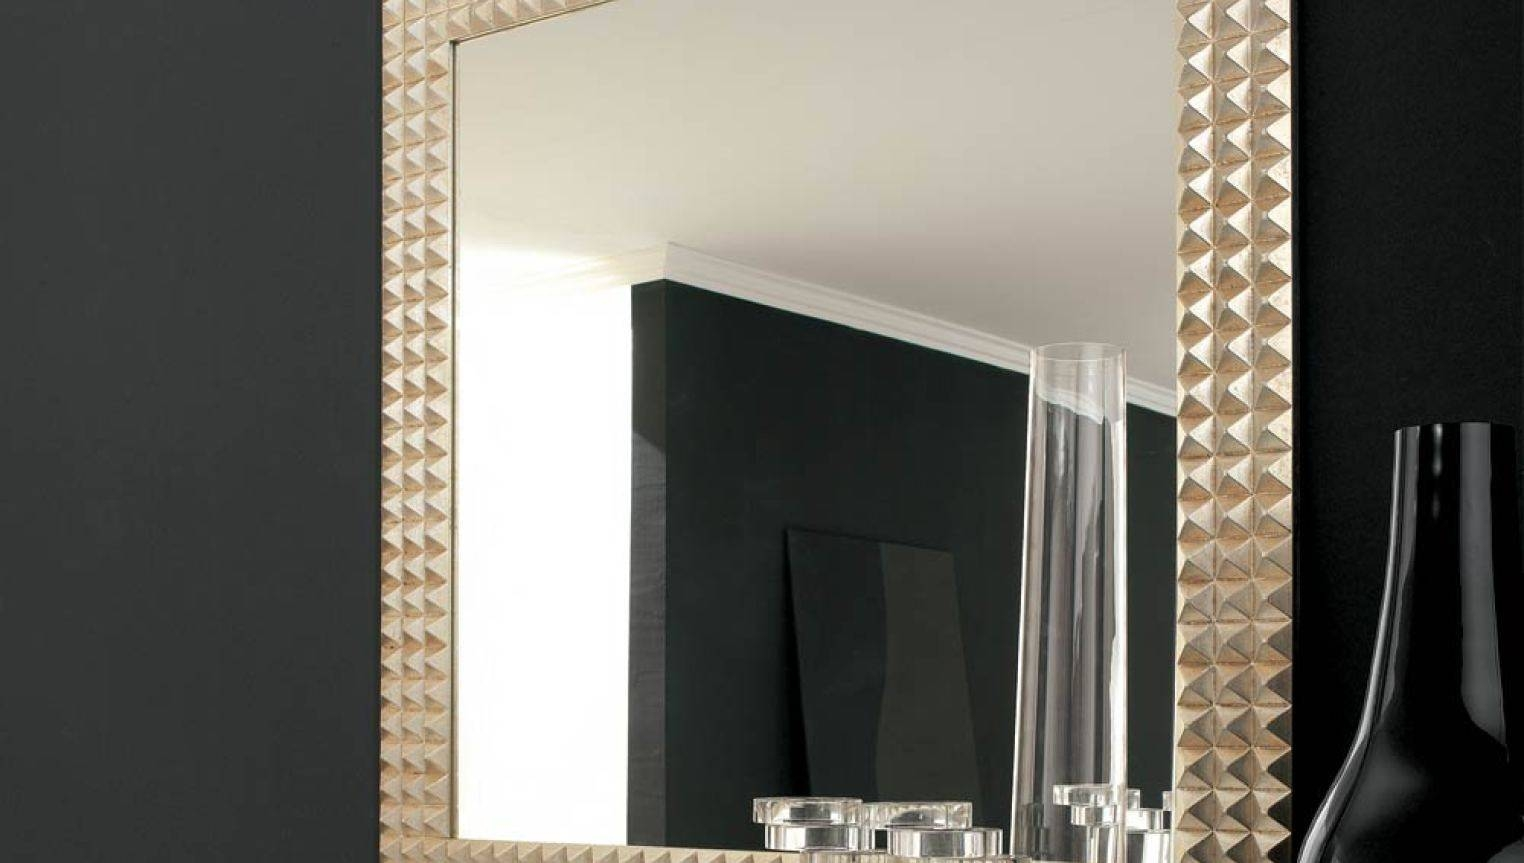 Mirror : Mirrors Stunning Black Mirrors For Sale Bling Glam Floor Throughout Bling Floor Mirrors (View 12 of 15)